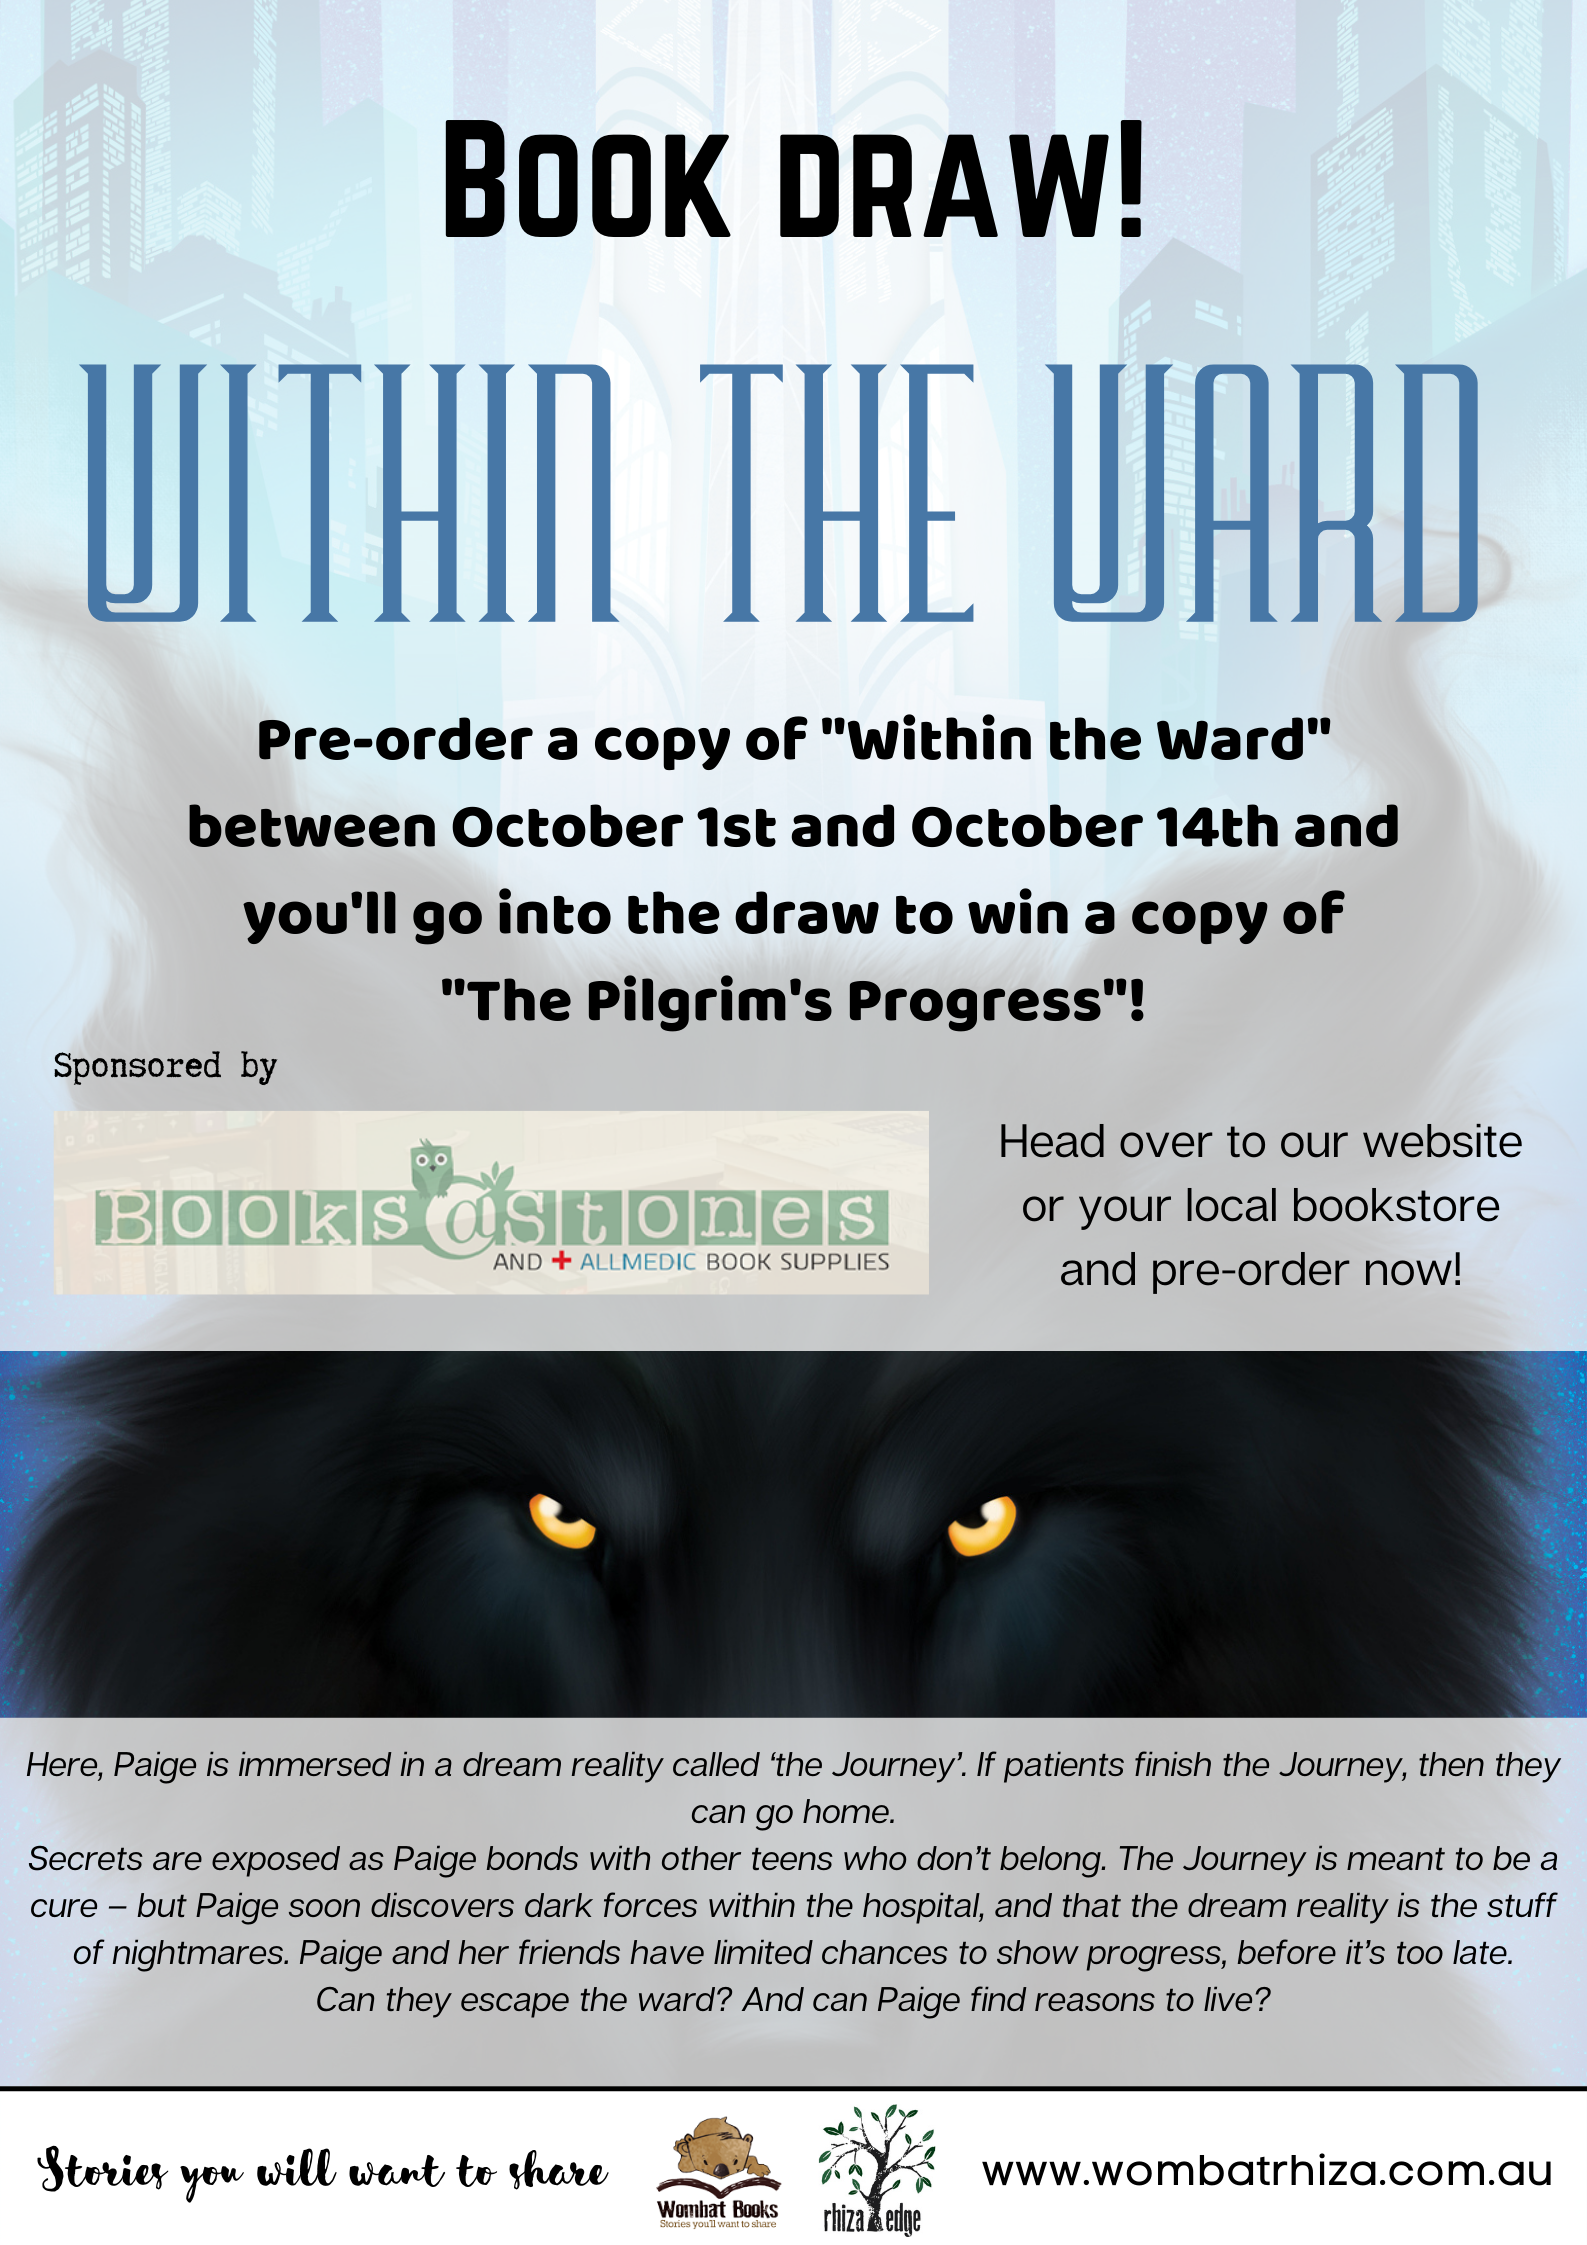 within-the-ward-book-draw-event-pic.png